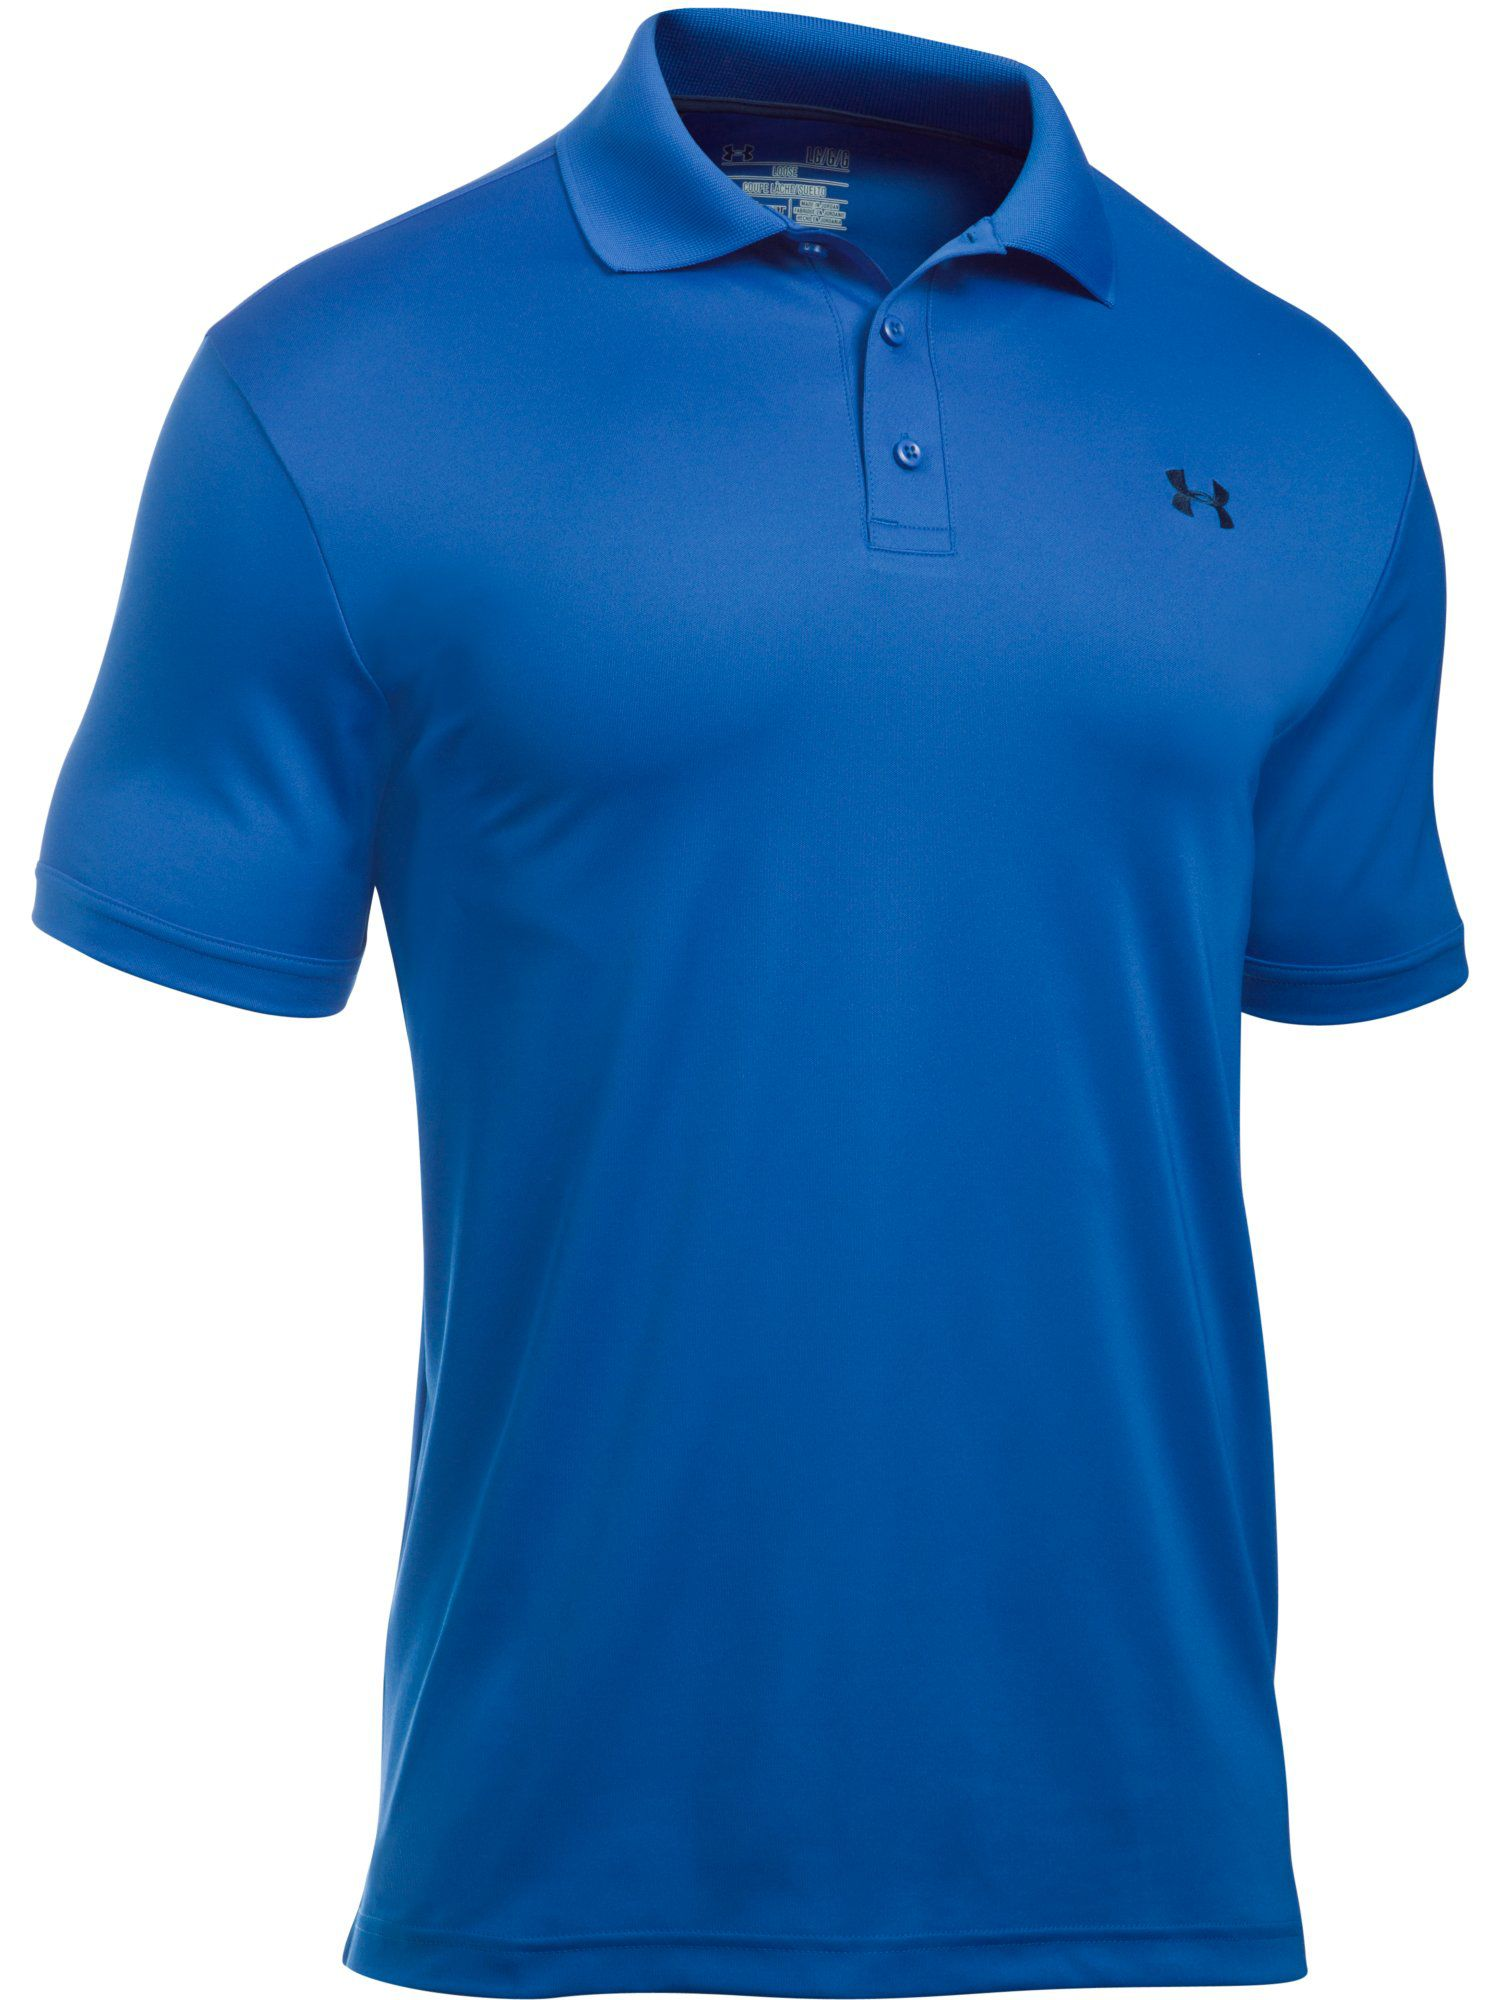 Men's Under Armour Performance Polo, Royal Blue